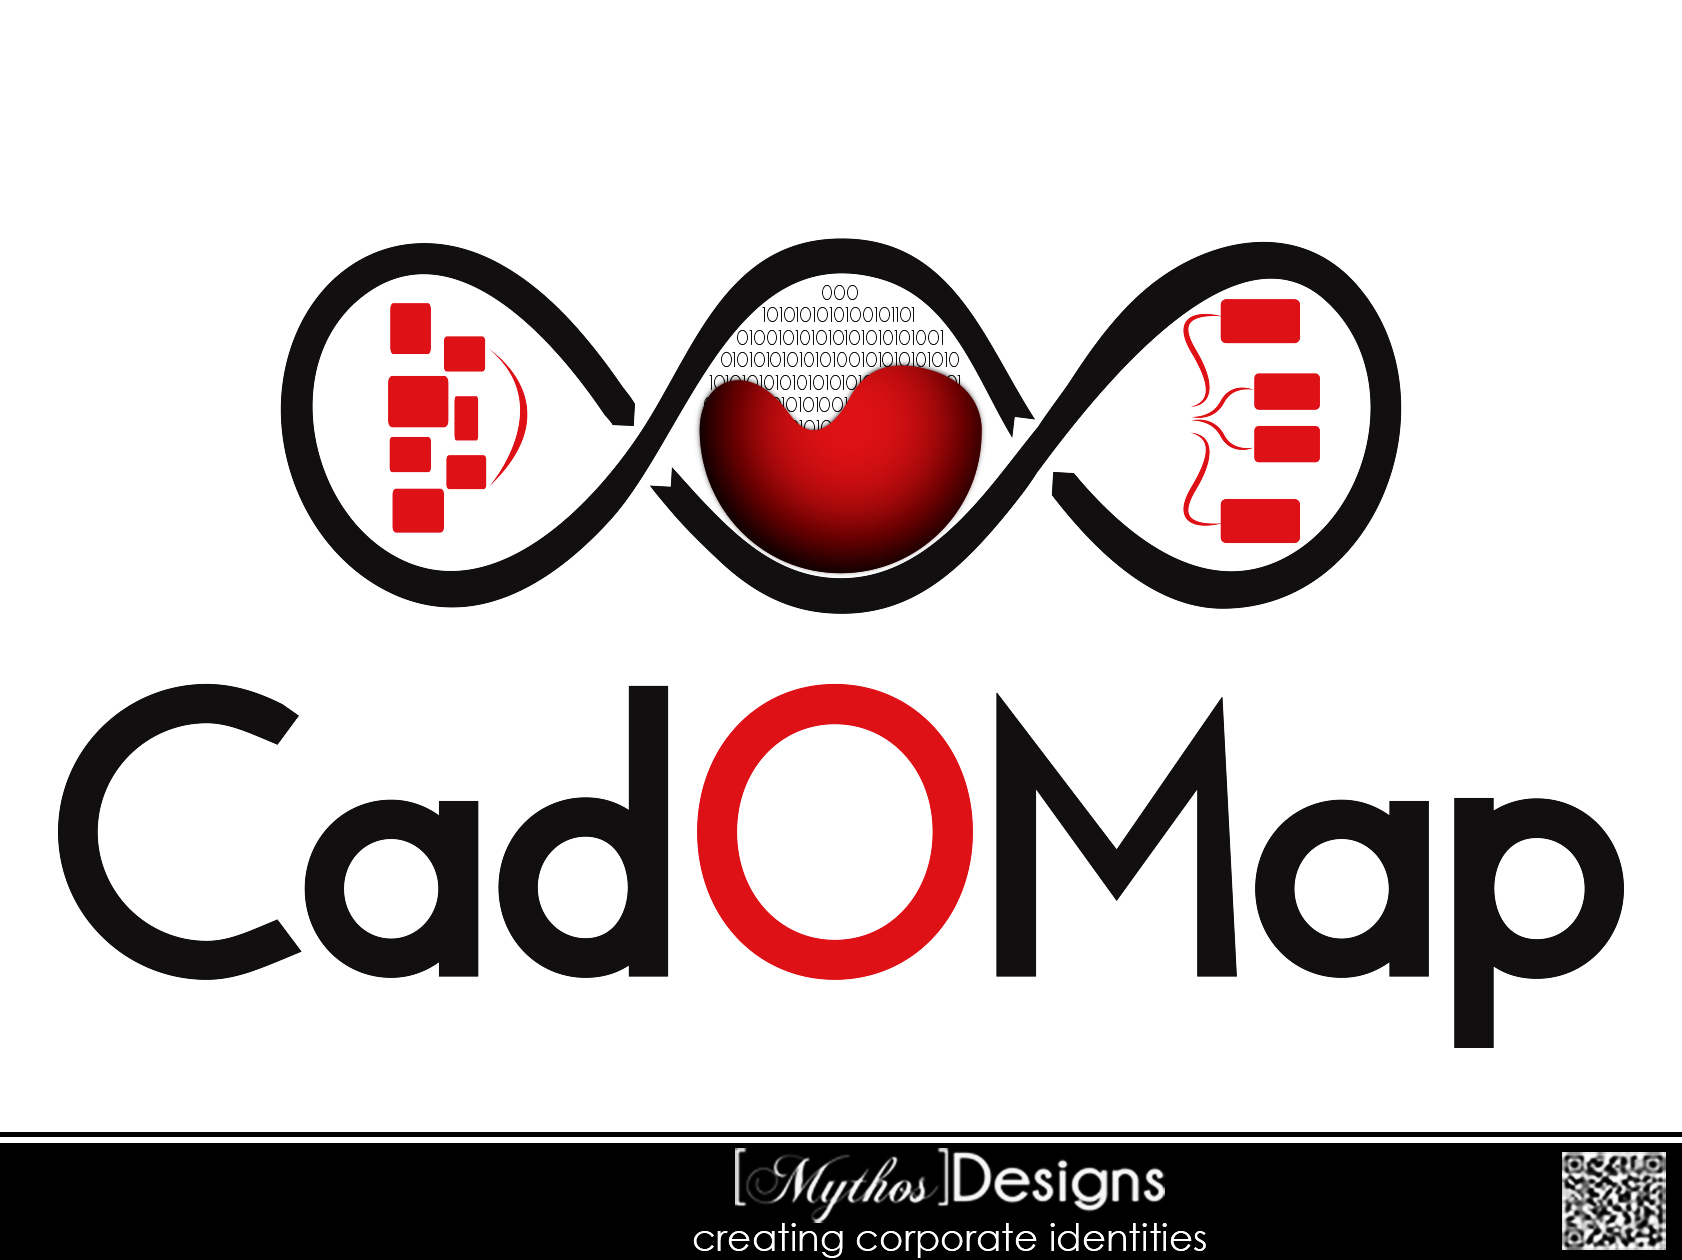 Logo Design by Mythos Designs - Entry No. 99 in the Logo Design Contest Captivating Logo Design for CadOMap software product.